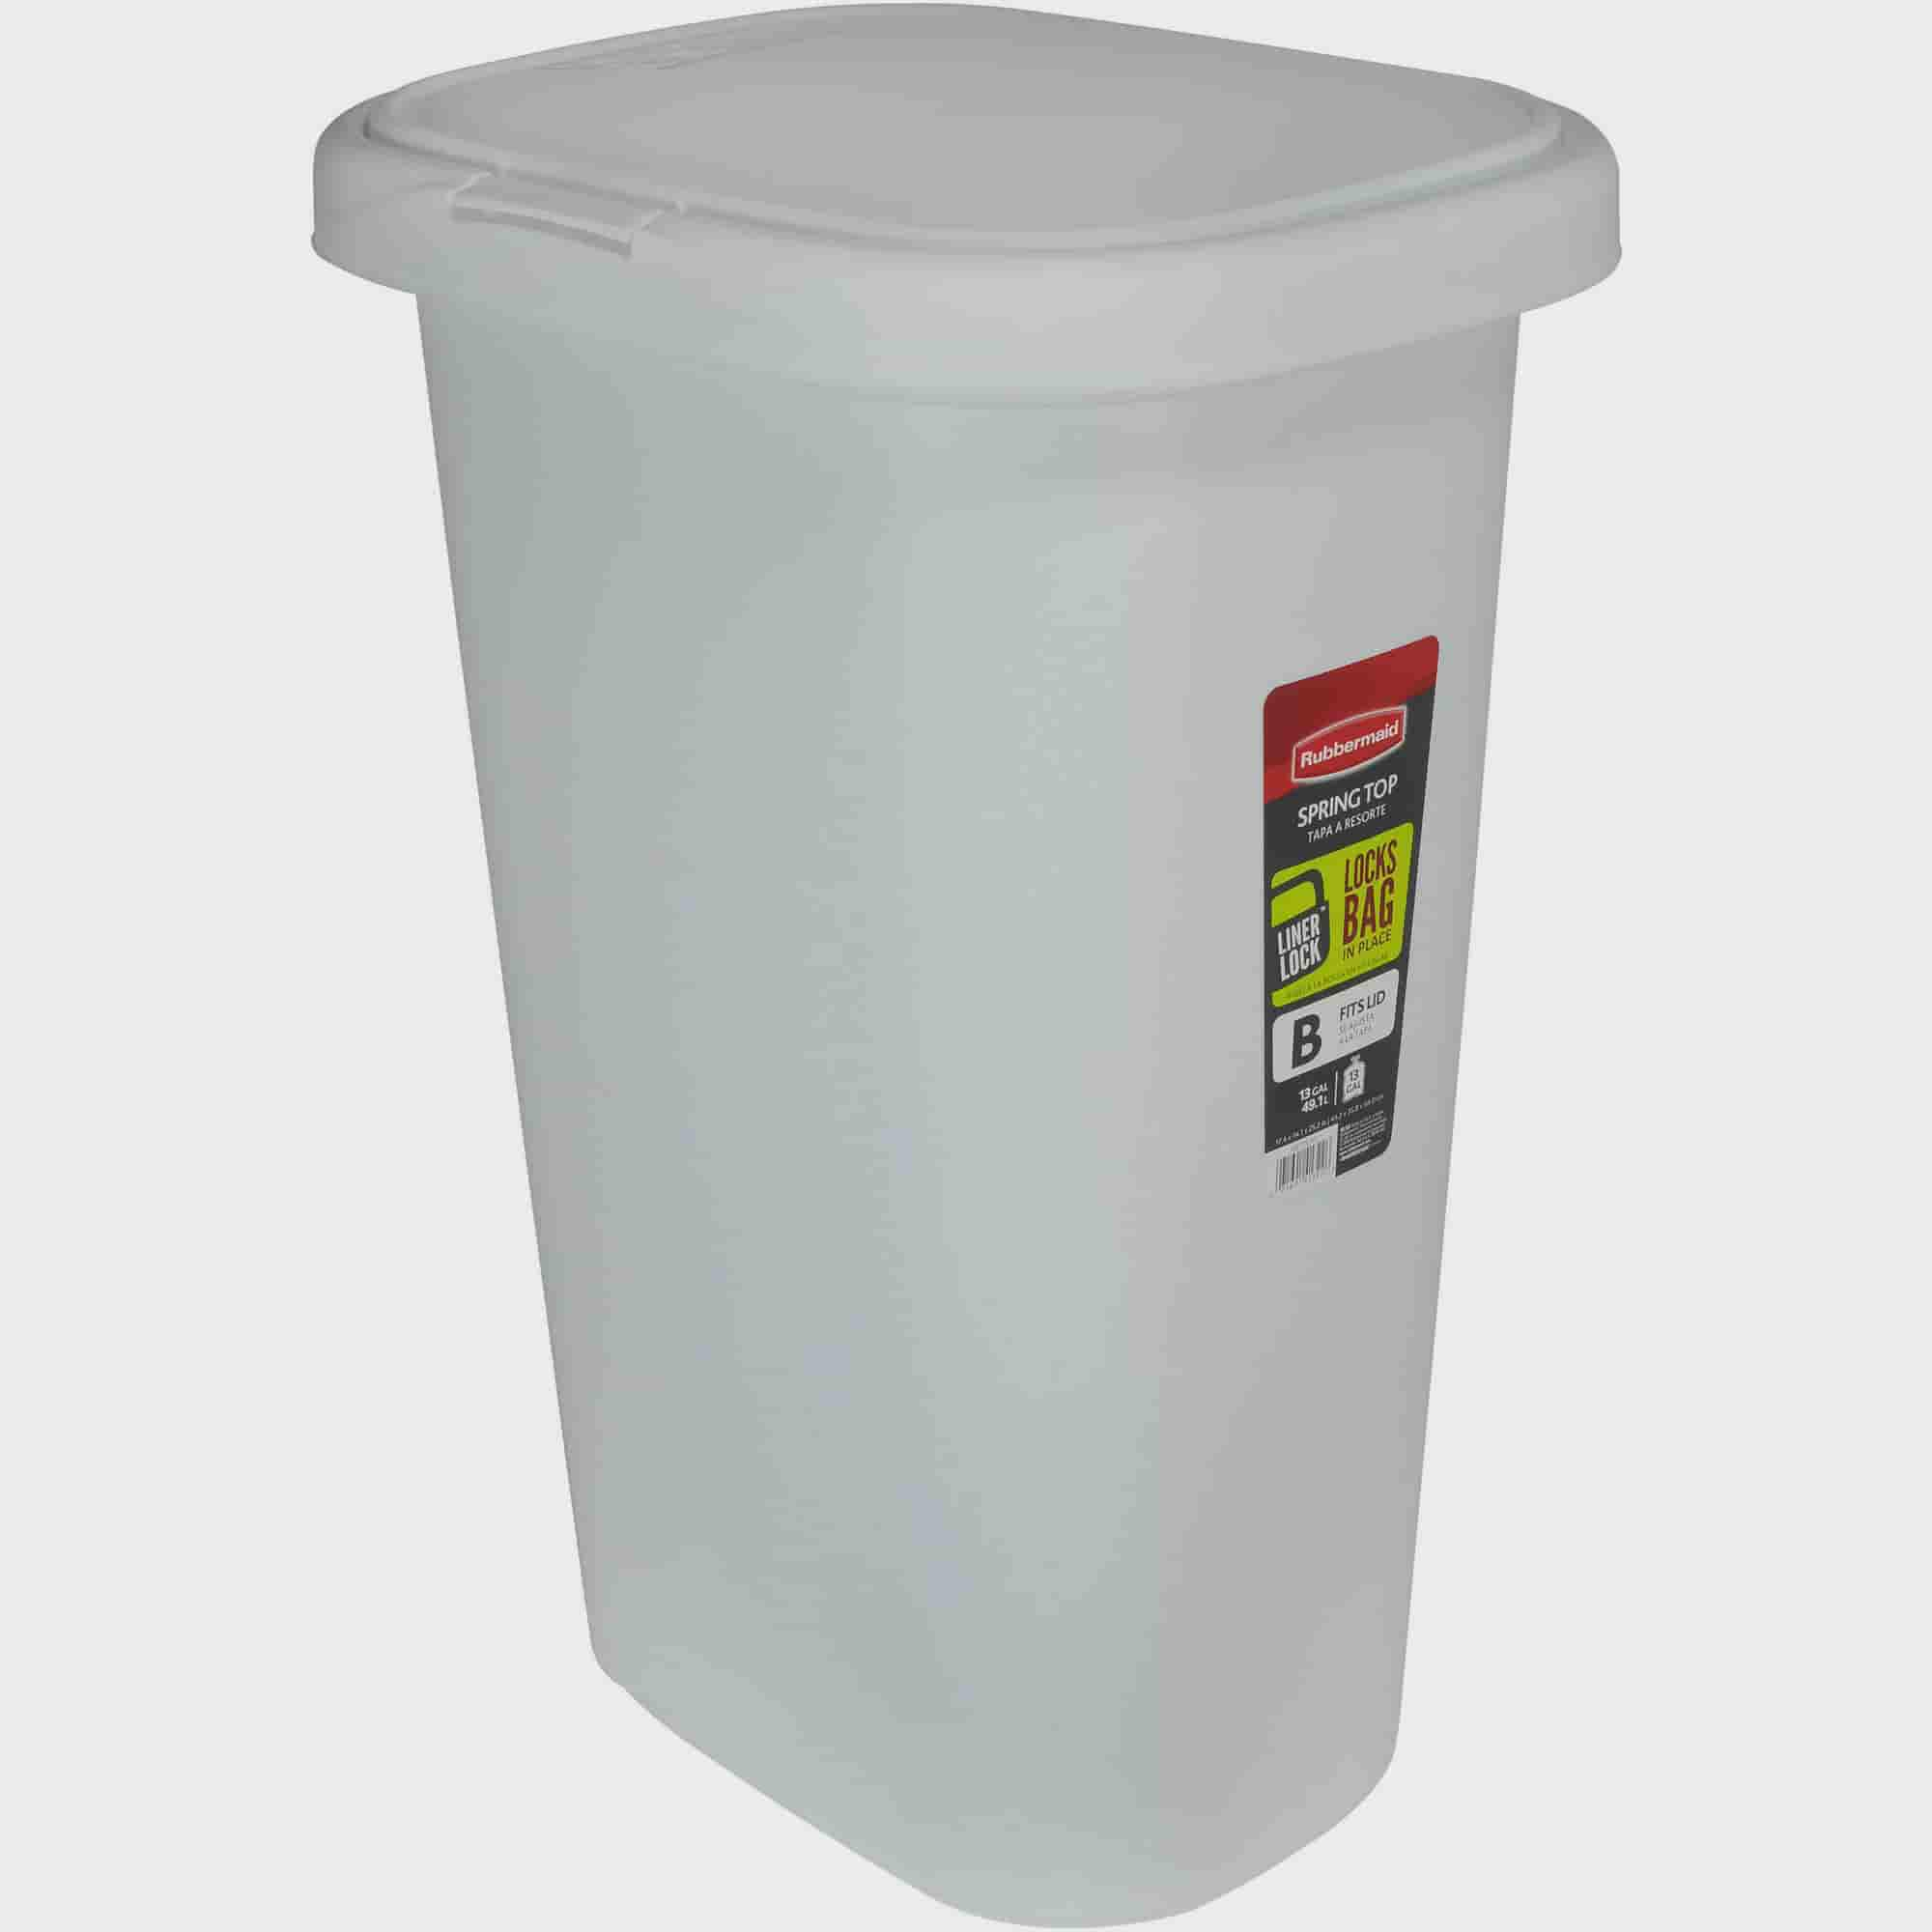 Rubbermaid LinerLock Spring Top Trash Can, 13 Gal, White - Walmart.com